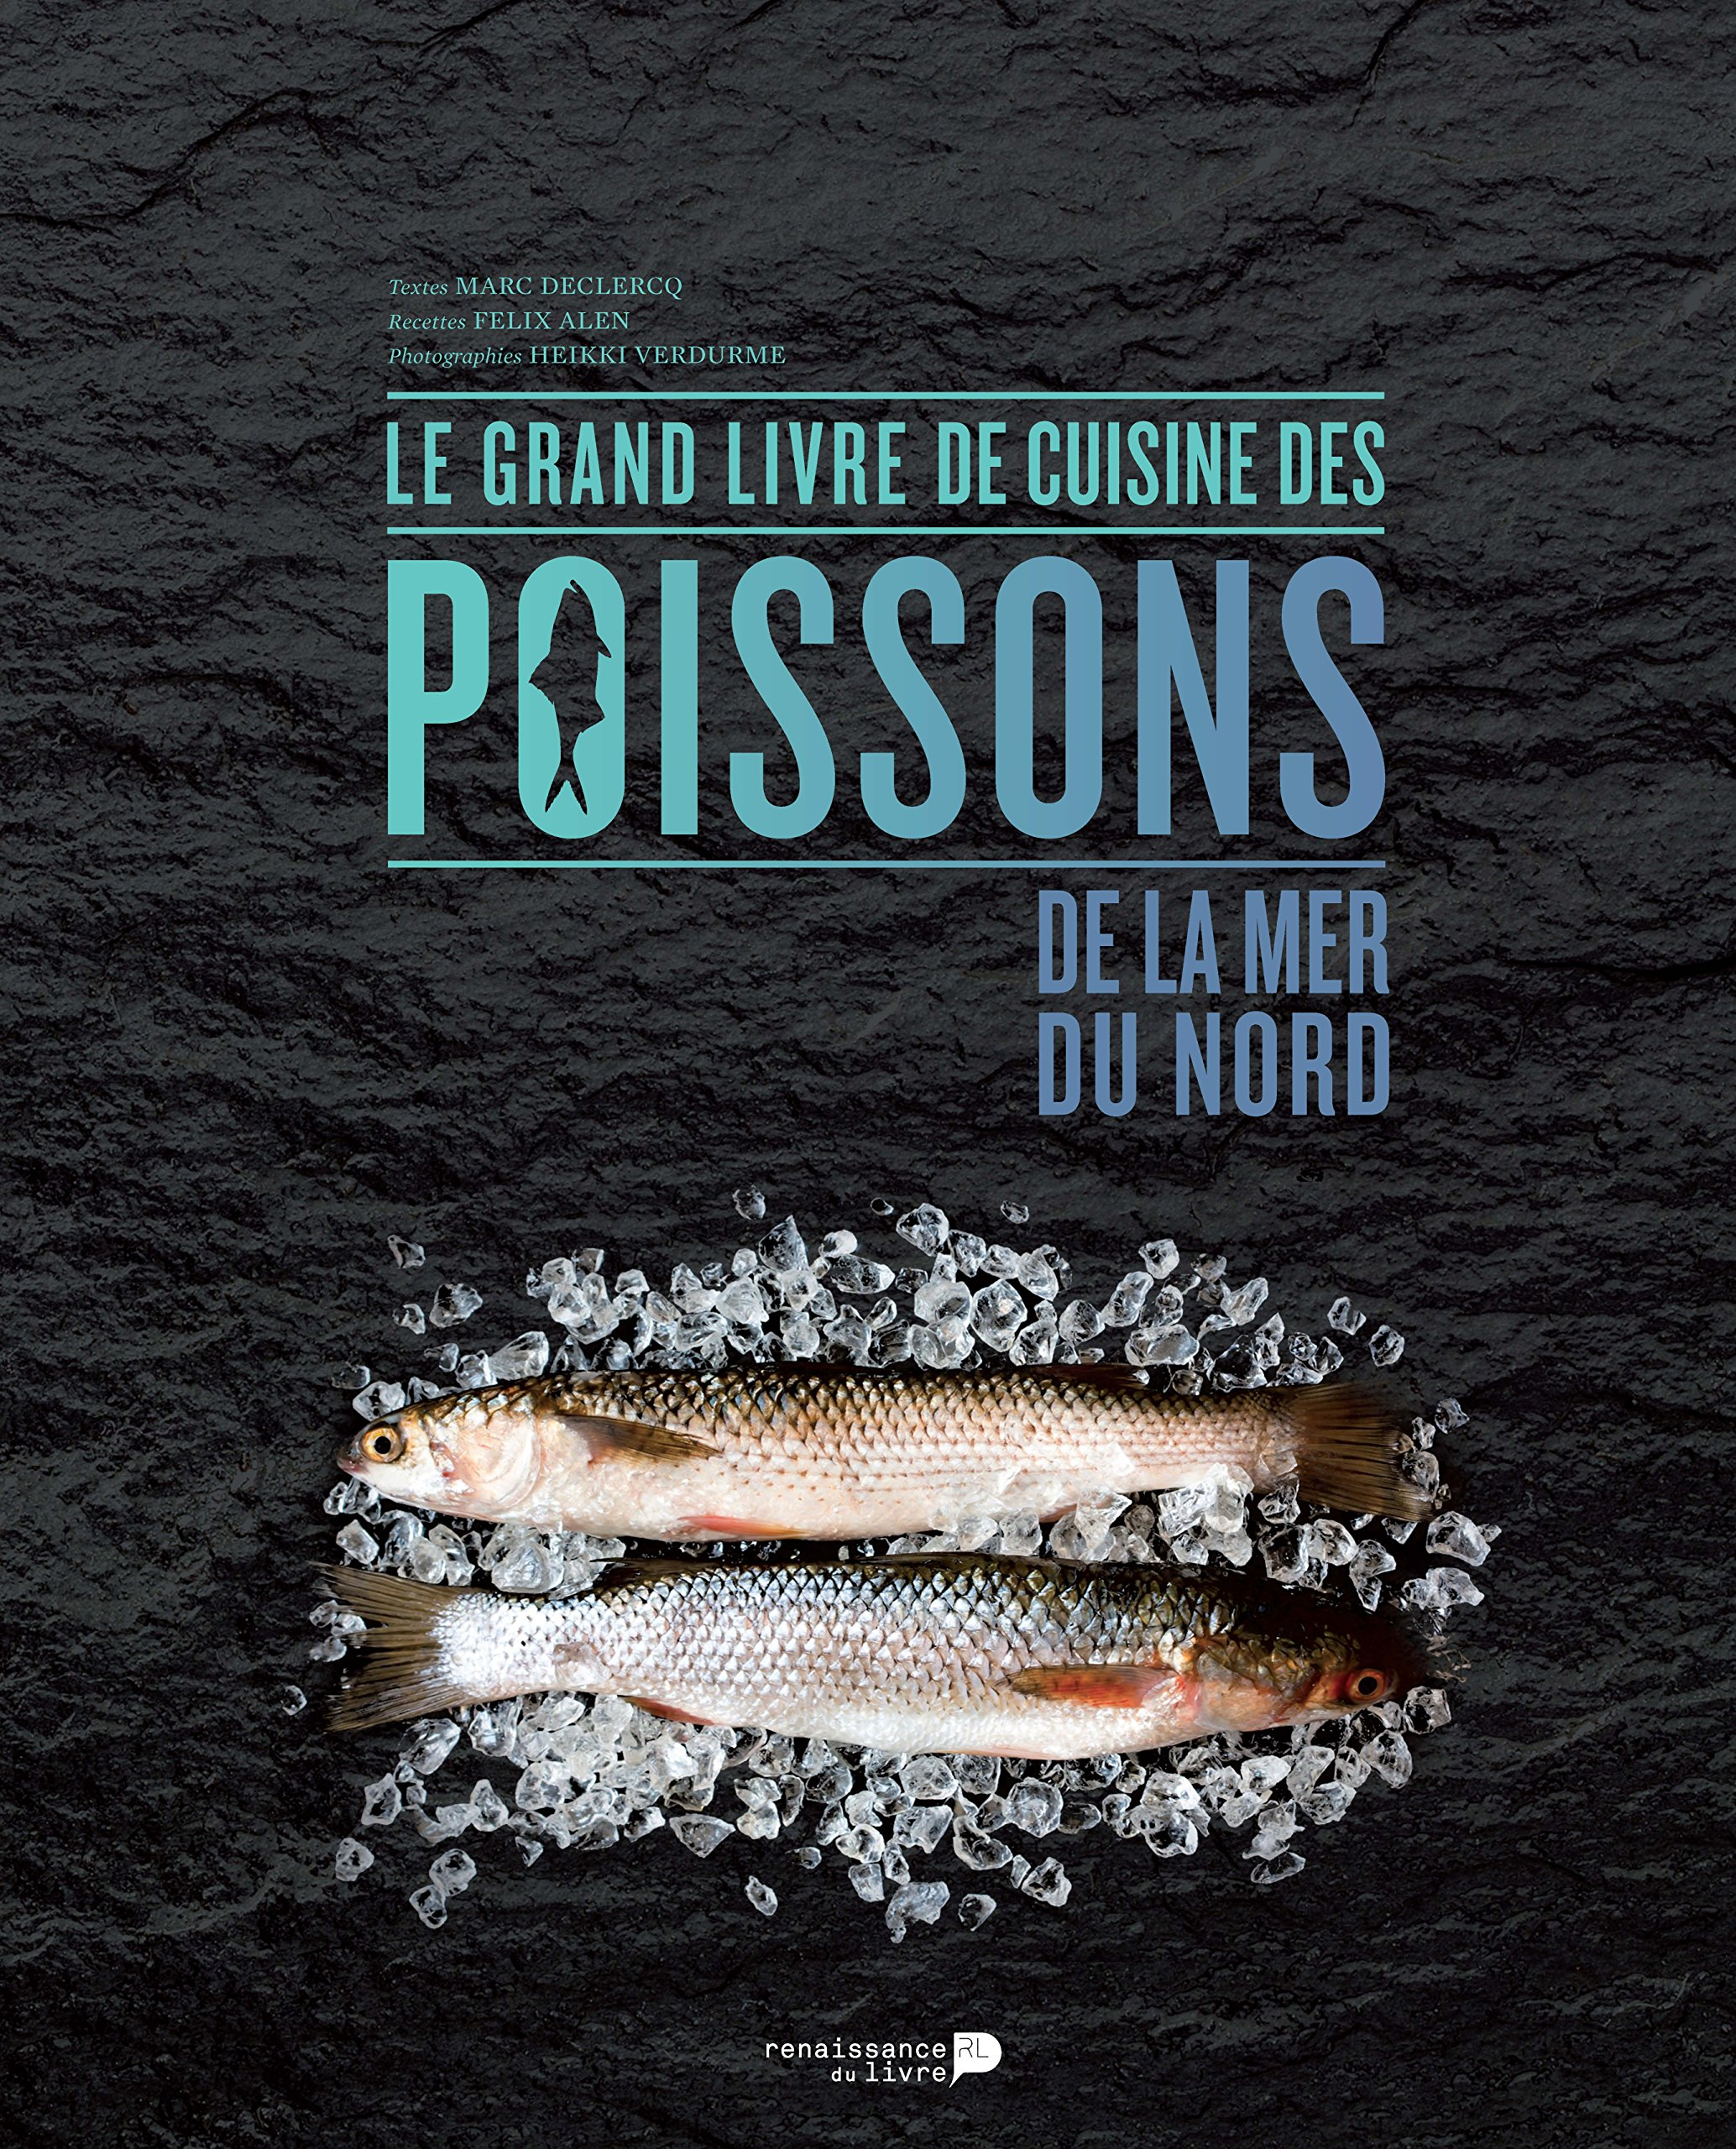 le grand livre de cuisine des poissons de la mer du nord le verre et l assiette. Black Bedroom Furniture Sets. Home Design Ideas